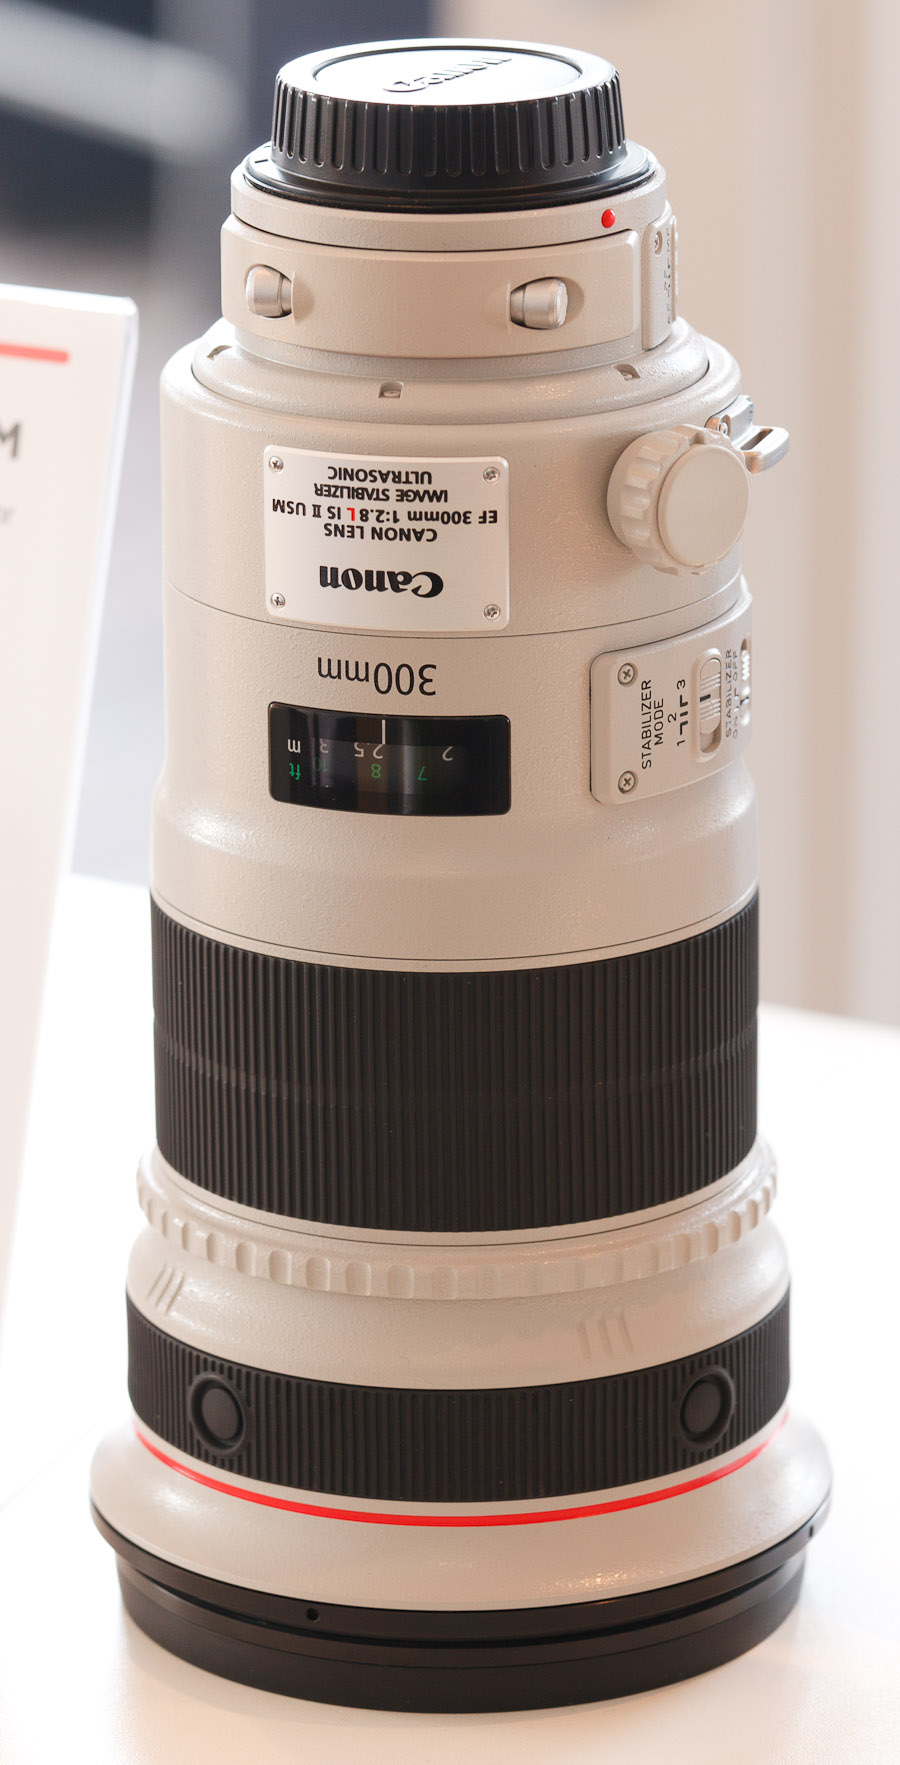 Canon's new second-generation 300mm F2.8 lens